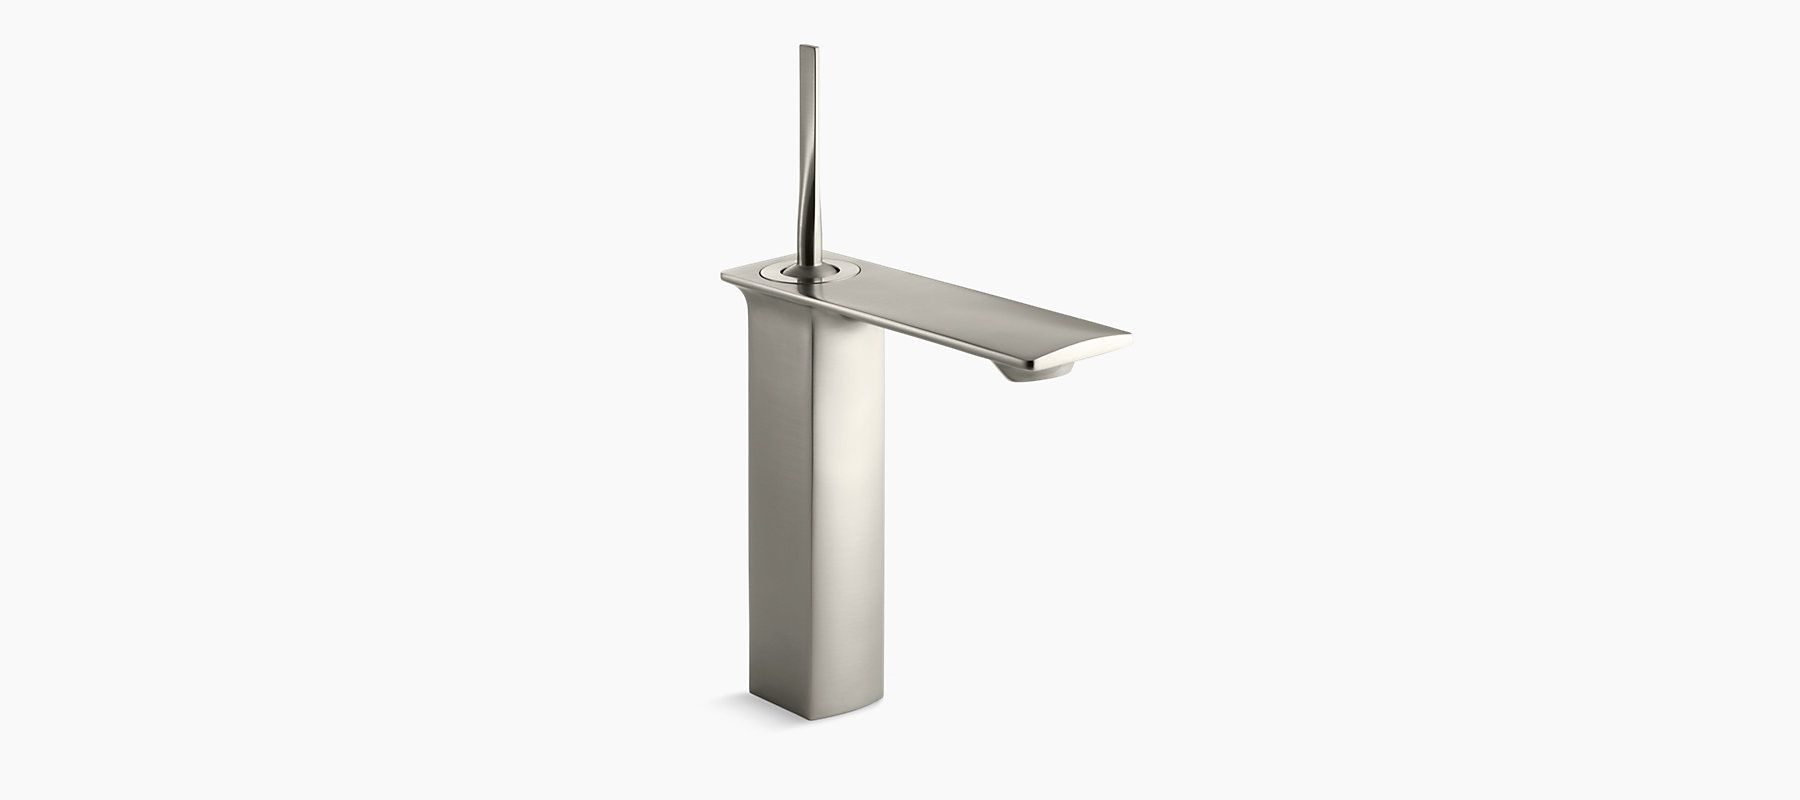 The K-14761-4 WaterSense-certified faucet, with ADA-compliant ...